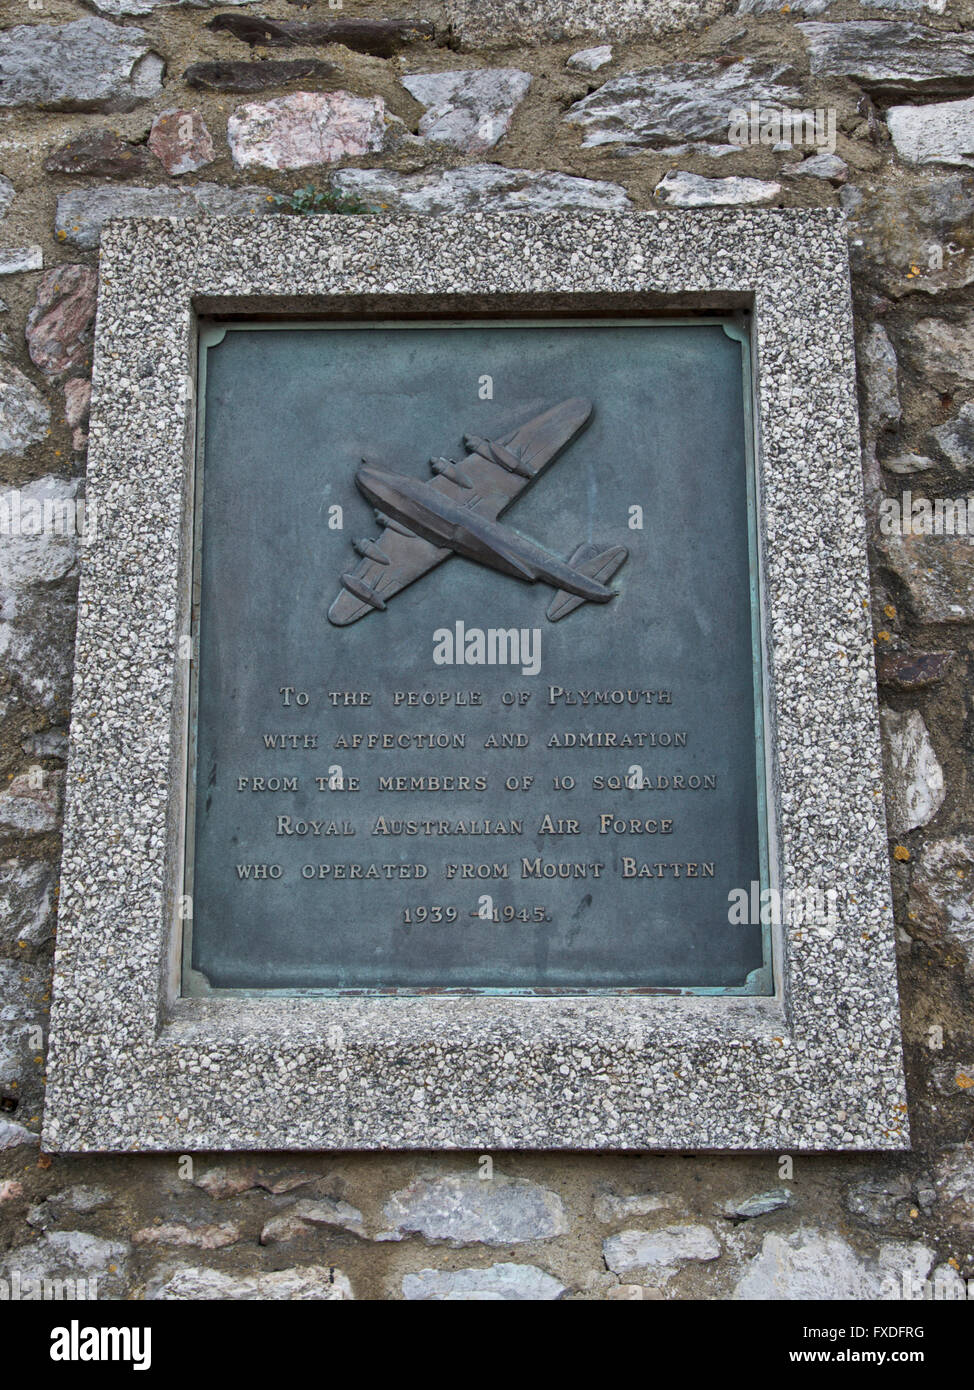 Royal Australian Air Force commemorative plaque on the sea wall at Plymouth - Stock Image